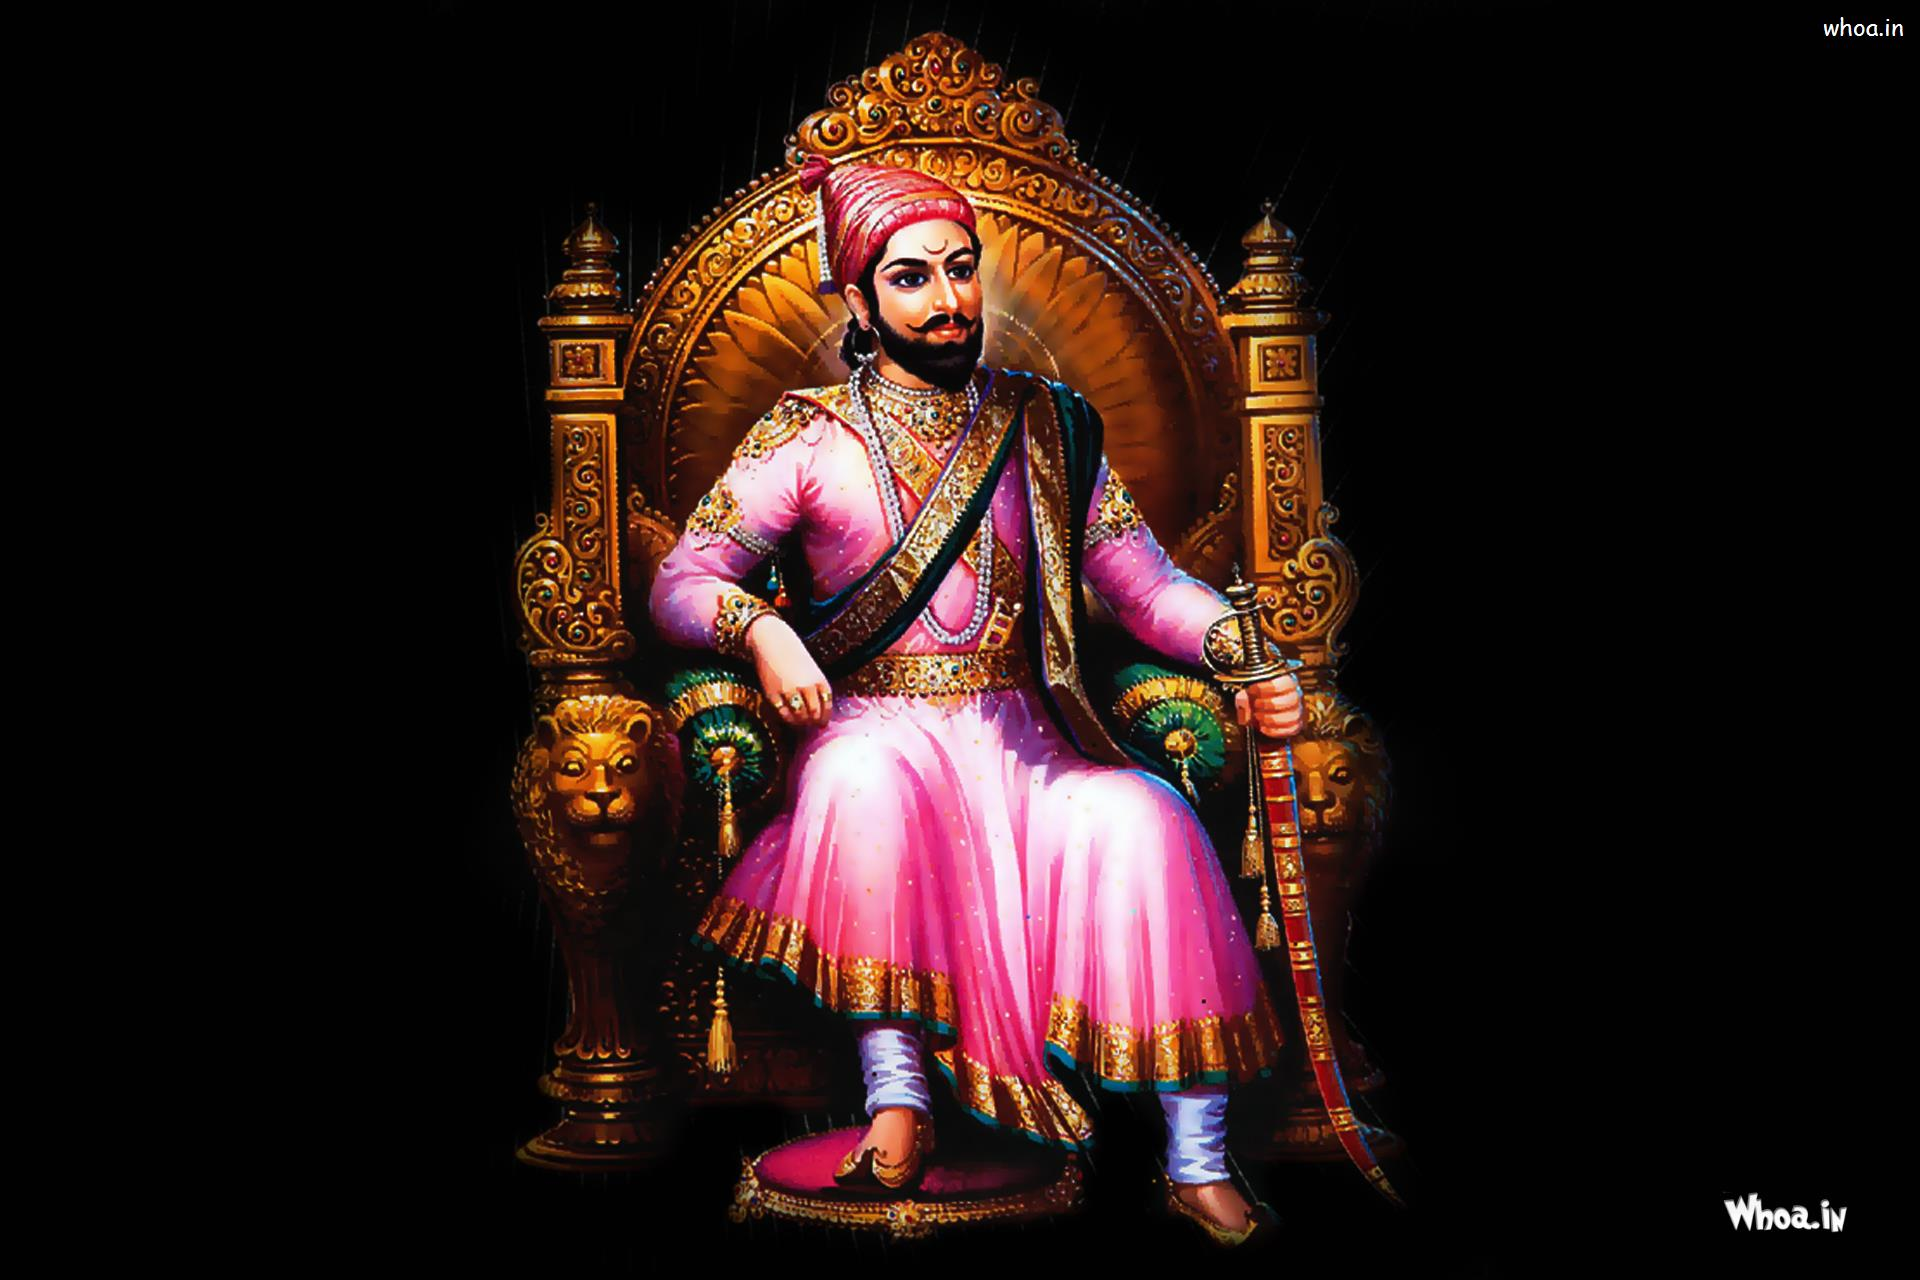 Hd wallpaper shivaji maharaj -  Maharaja Shivaji Sitting Wirh Dark Background Painting Hd Wallpaper